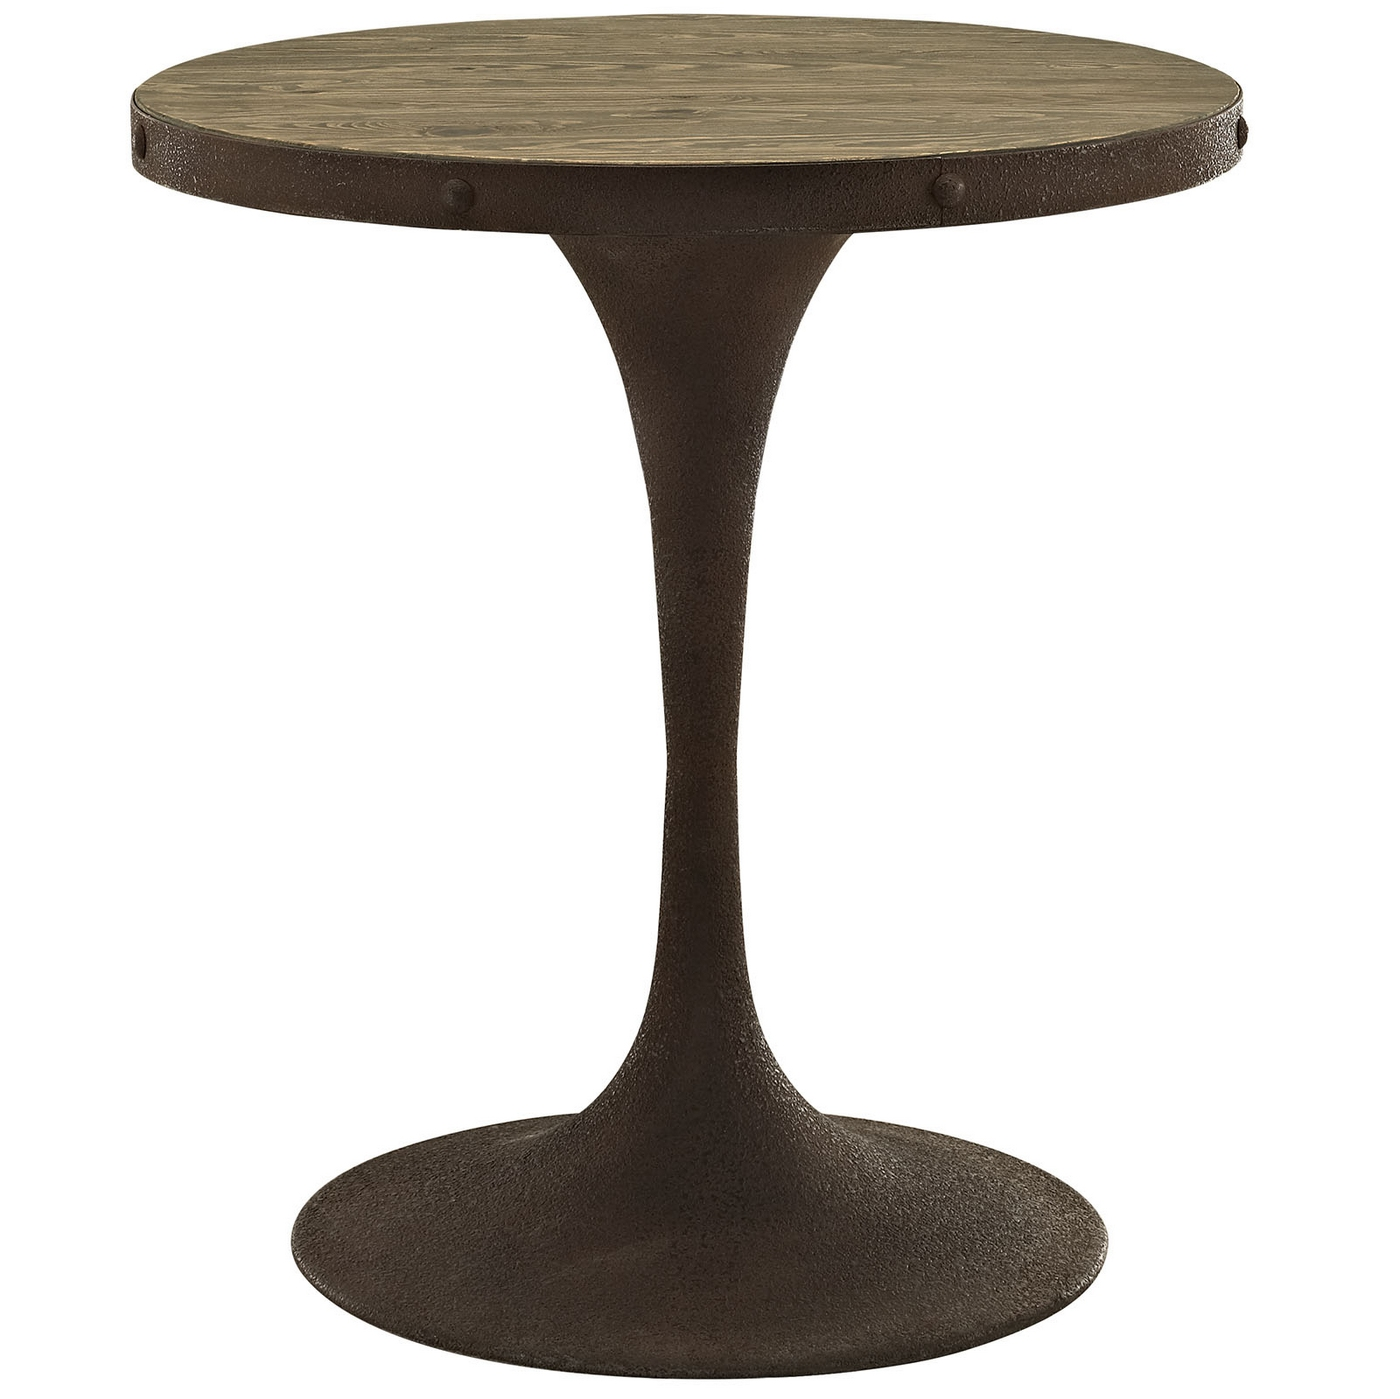 Drive rustic 28 round wood top dining table w iron pedestal base brown ebay - Pedestal base for dining table ...